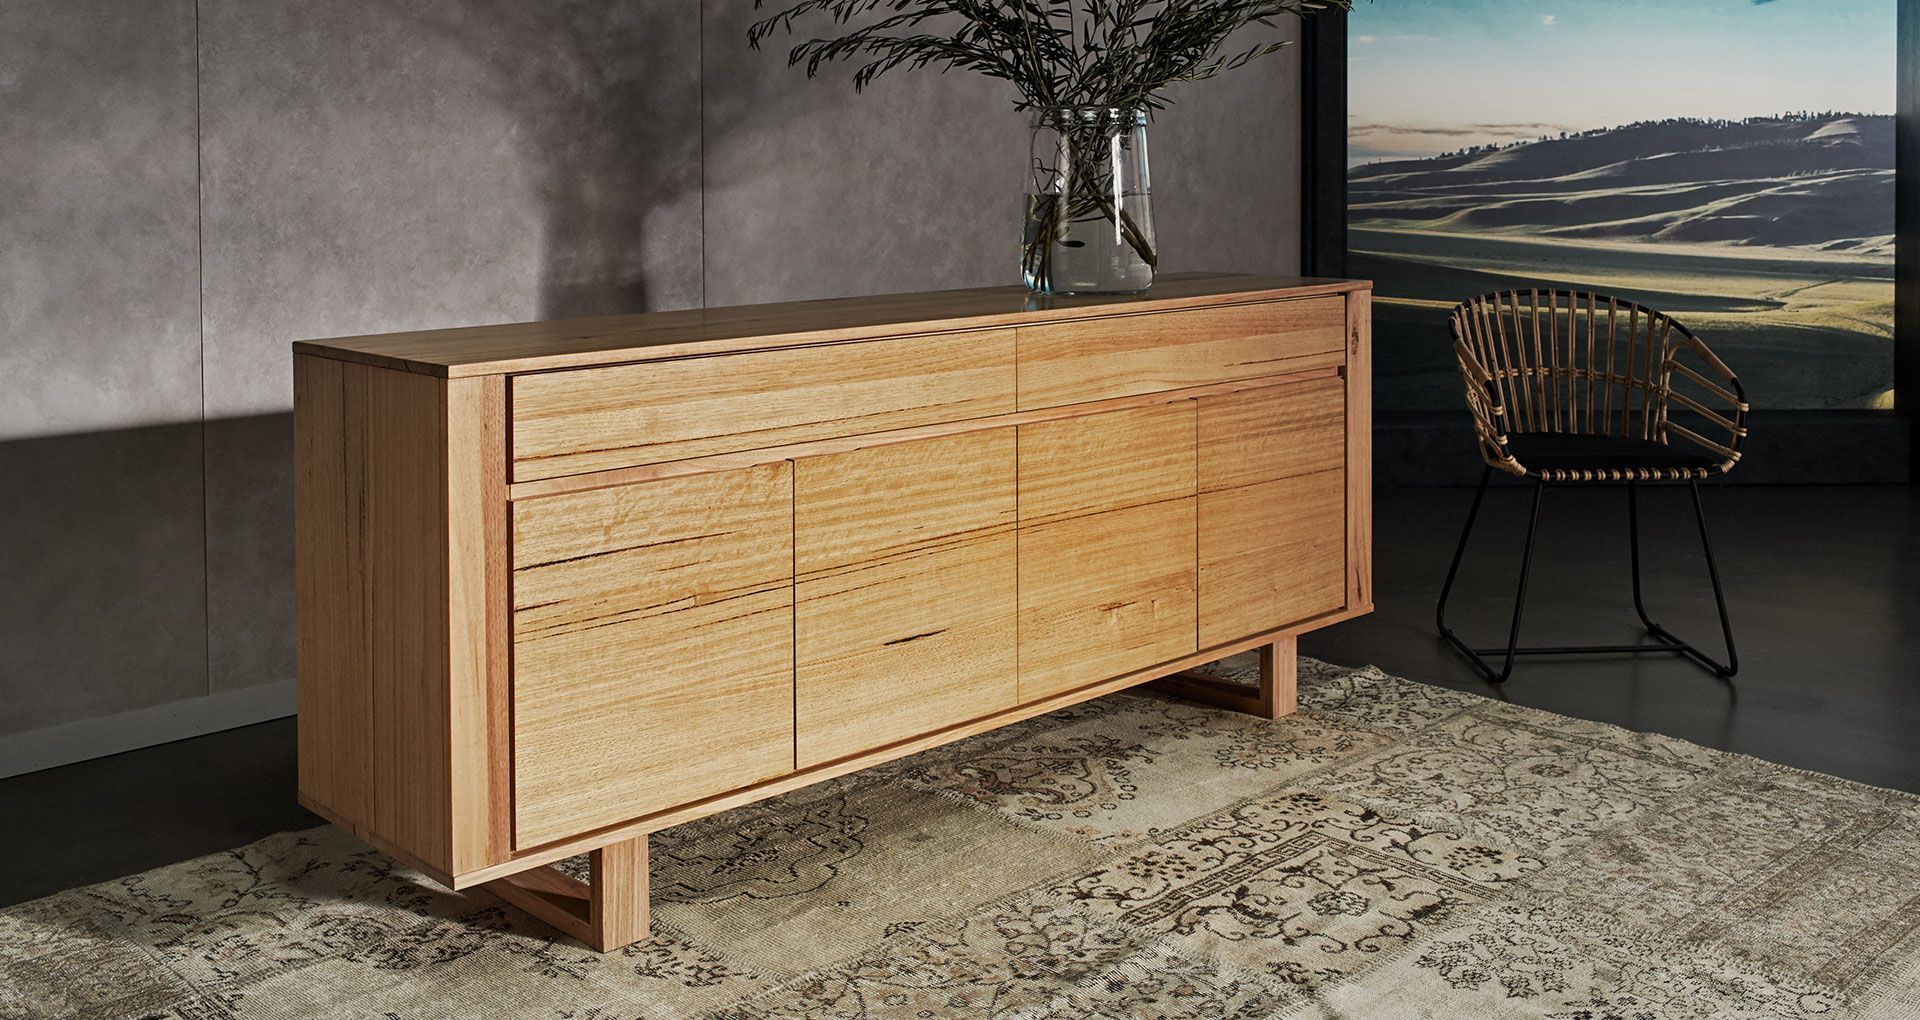 TANAMI Nick Scali Furniture NZ in 2020 Coffee table